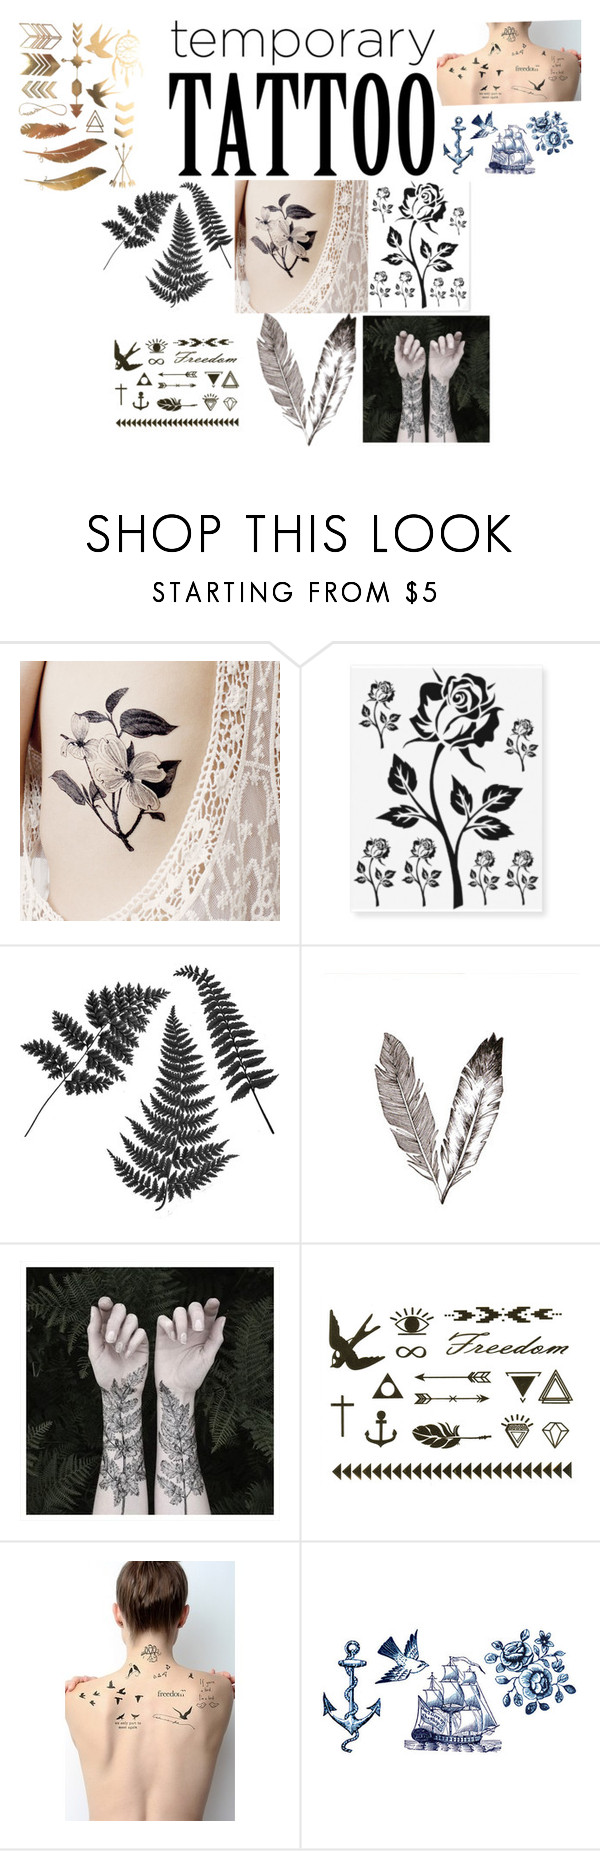 """Temp Tattoos!!!"" by futurestar12 ❤ liked on Polyvore featuring beauty, Nature Girl, Tattify, Tattly and temporarytattoo"